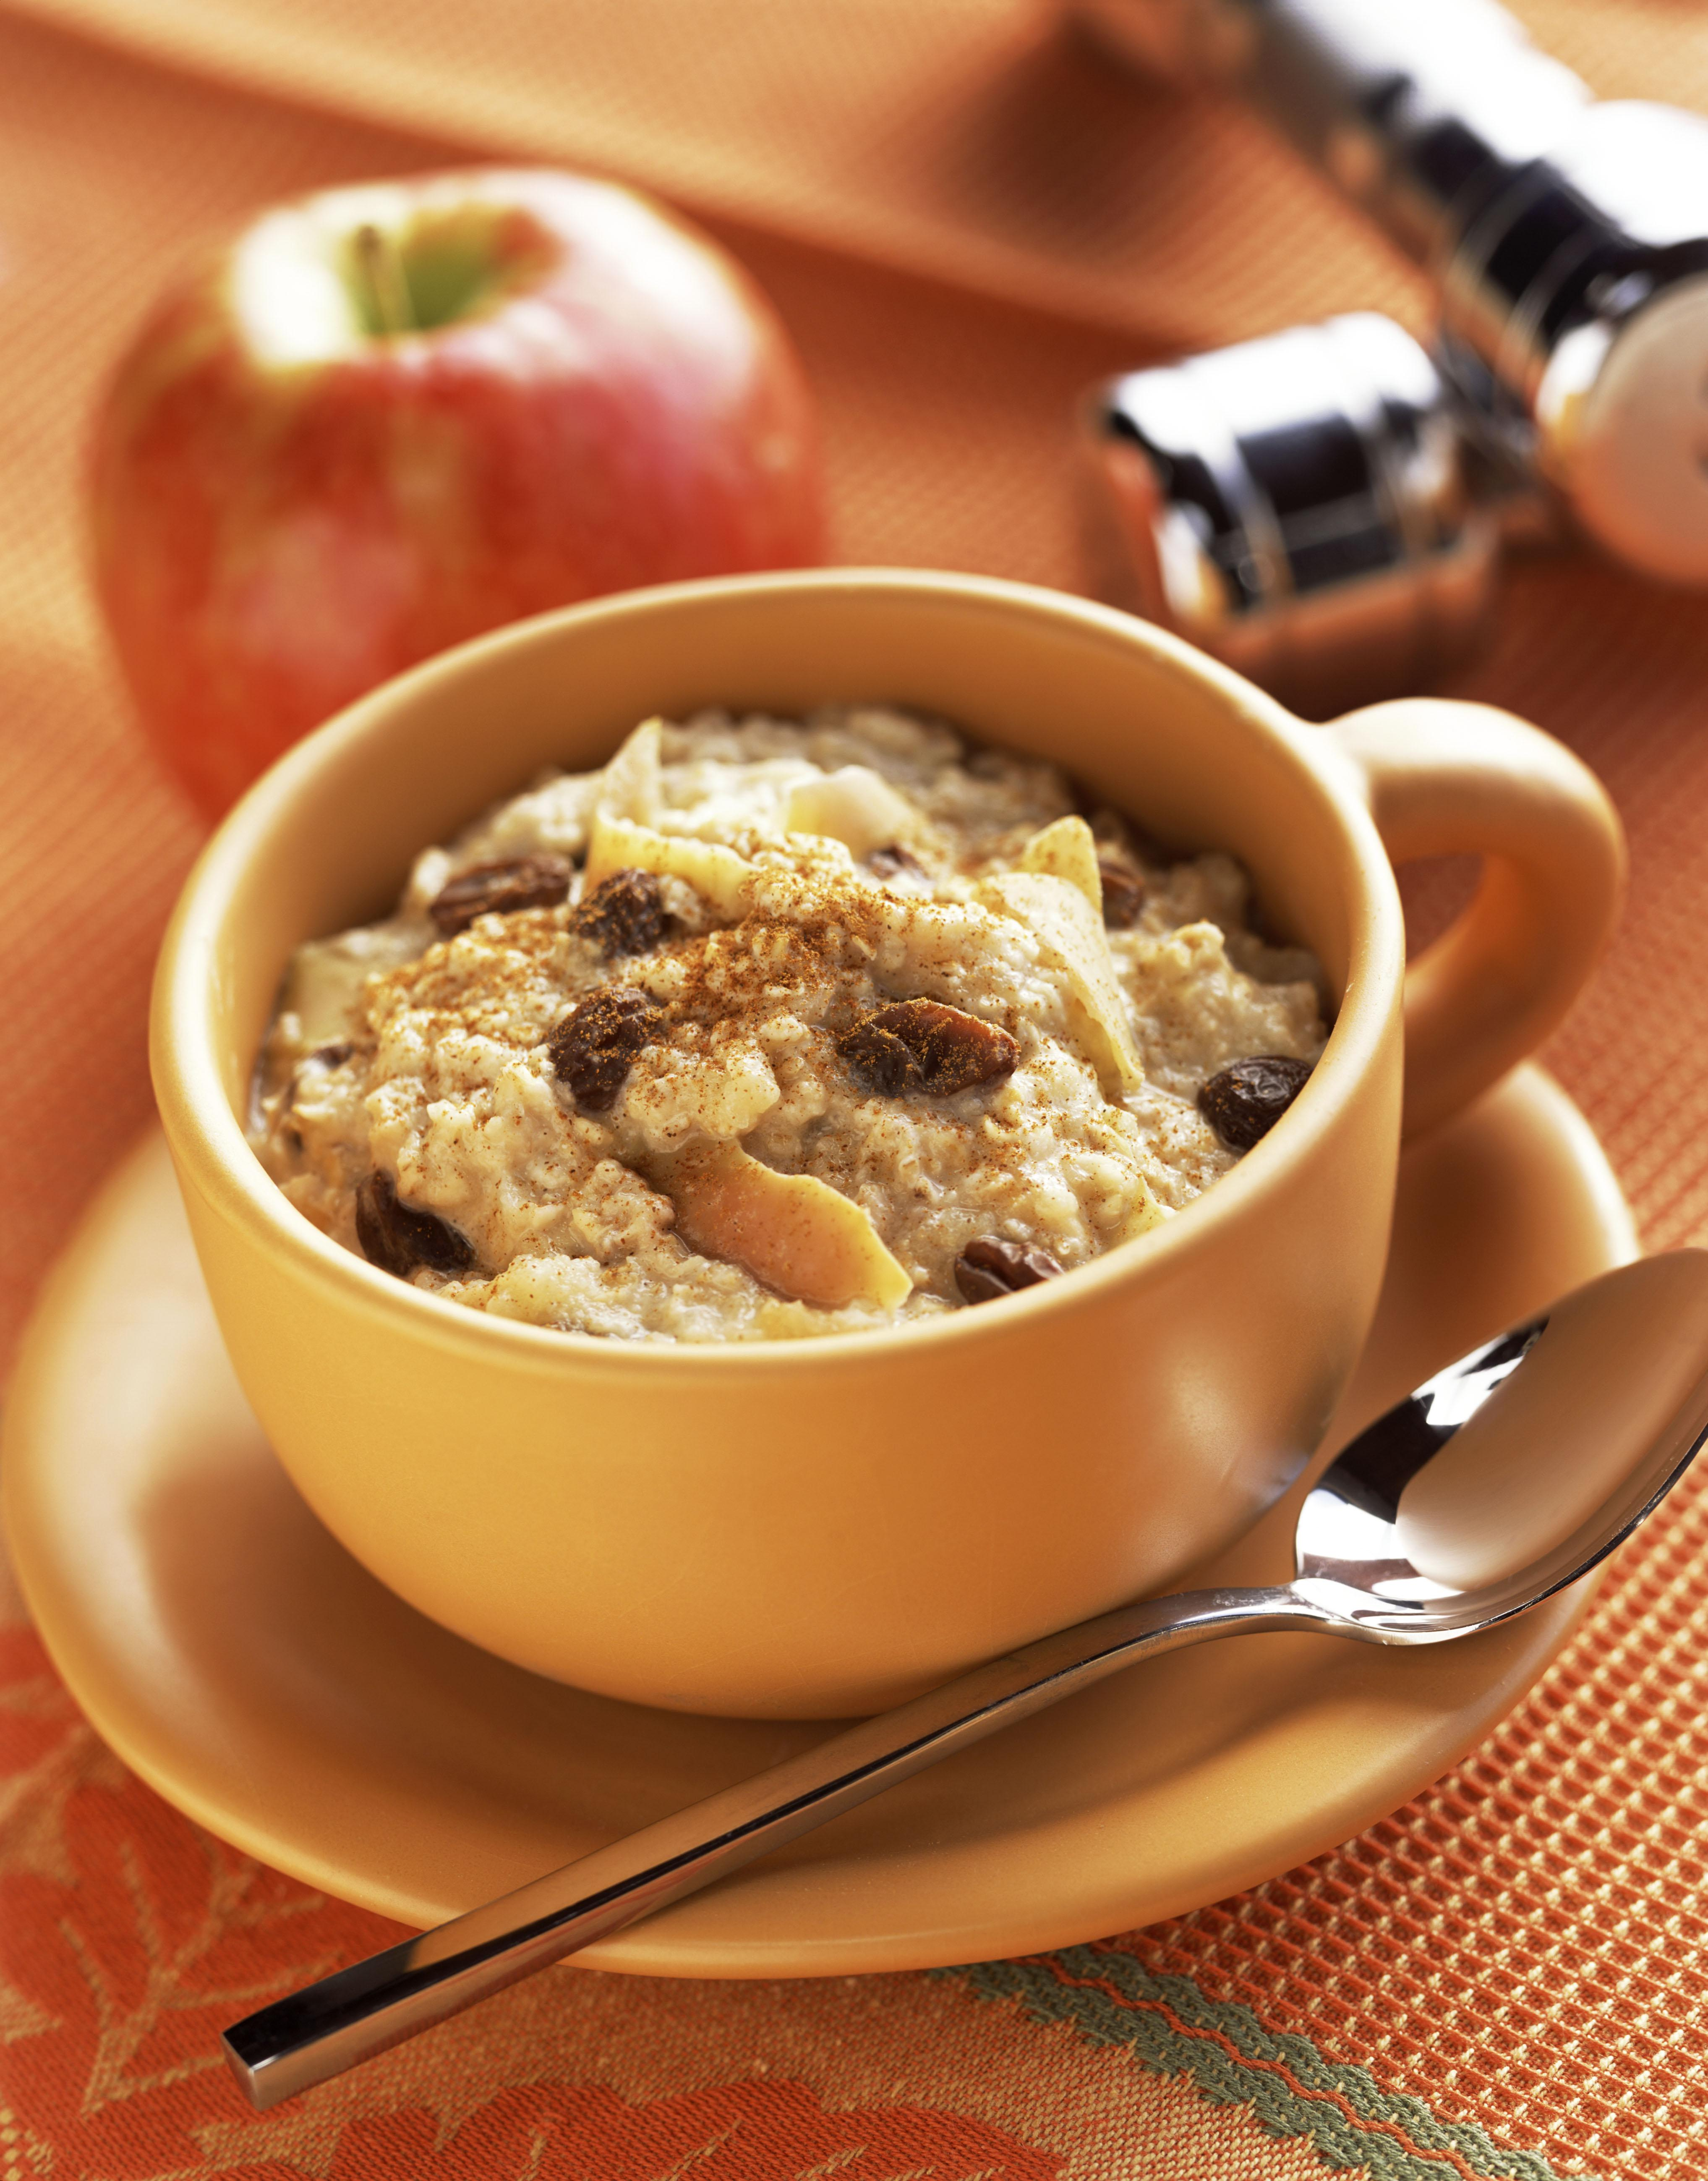 Oatmeal and fruit